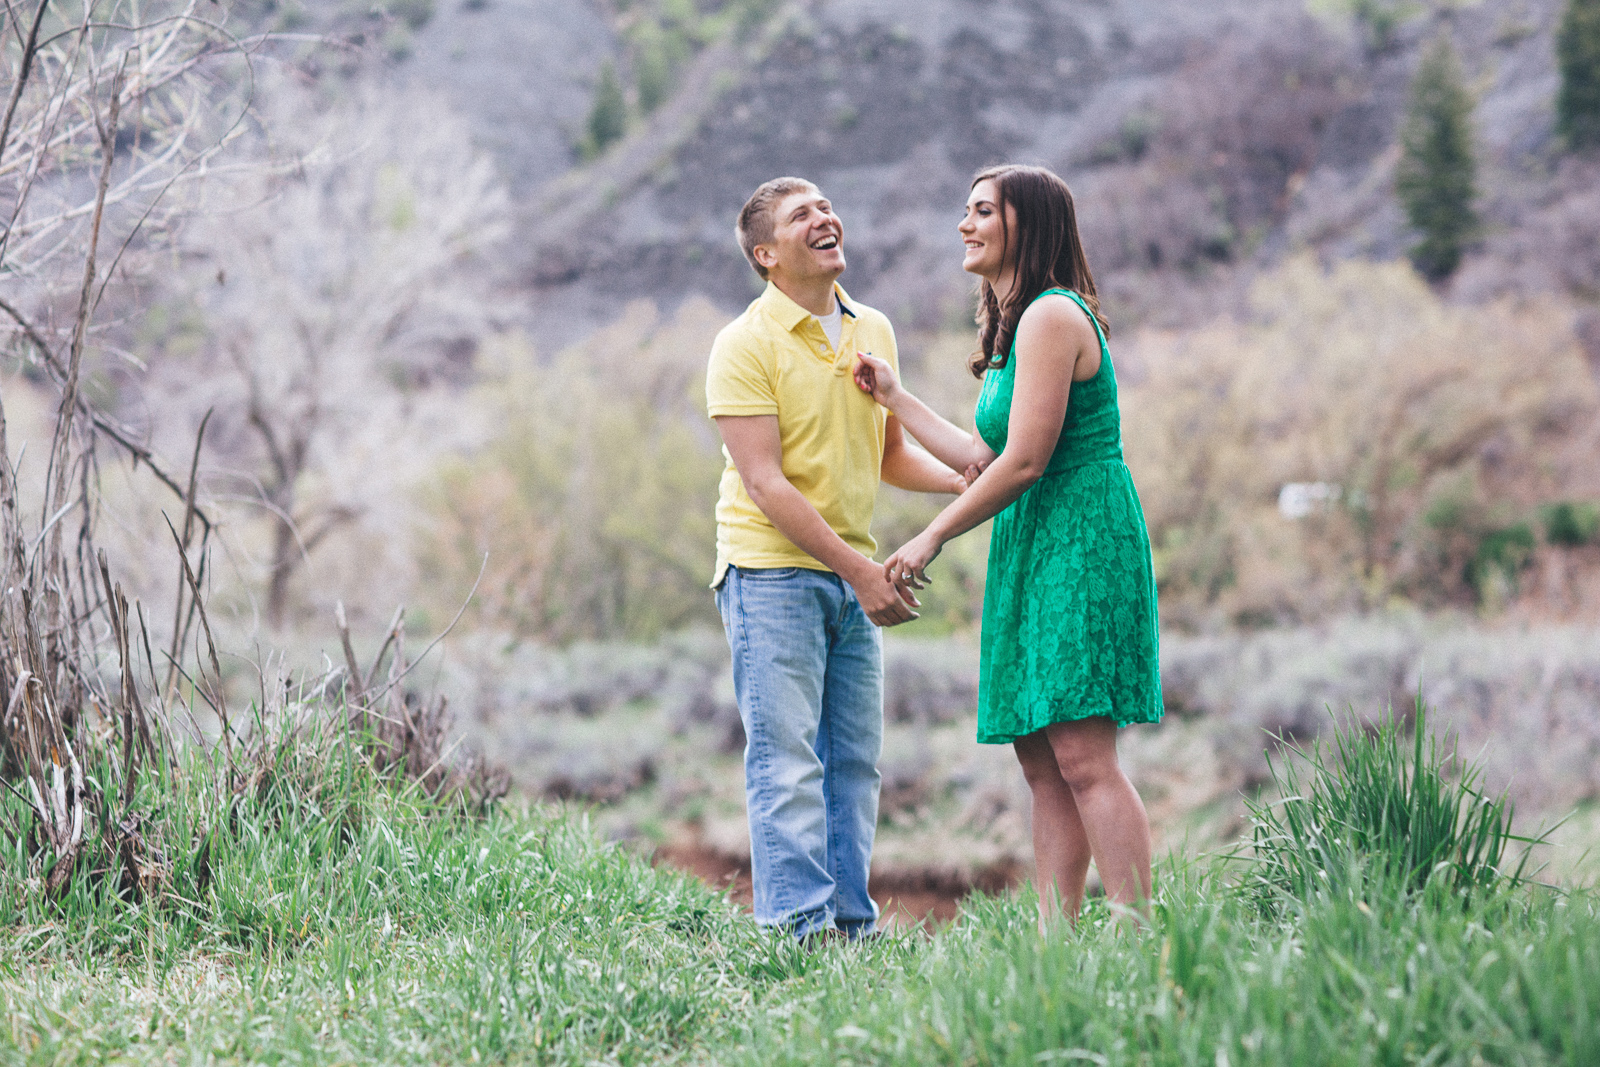 043-engagement-trees-fun-wedding-train-laughing-durango-colorado-farmington-candid